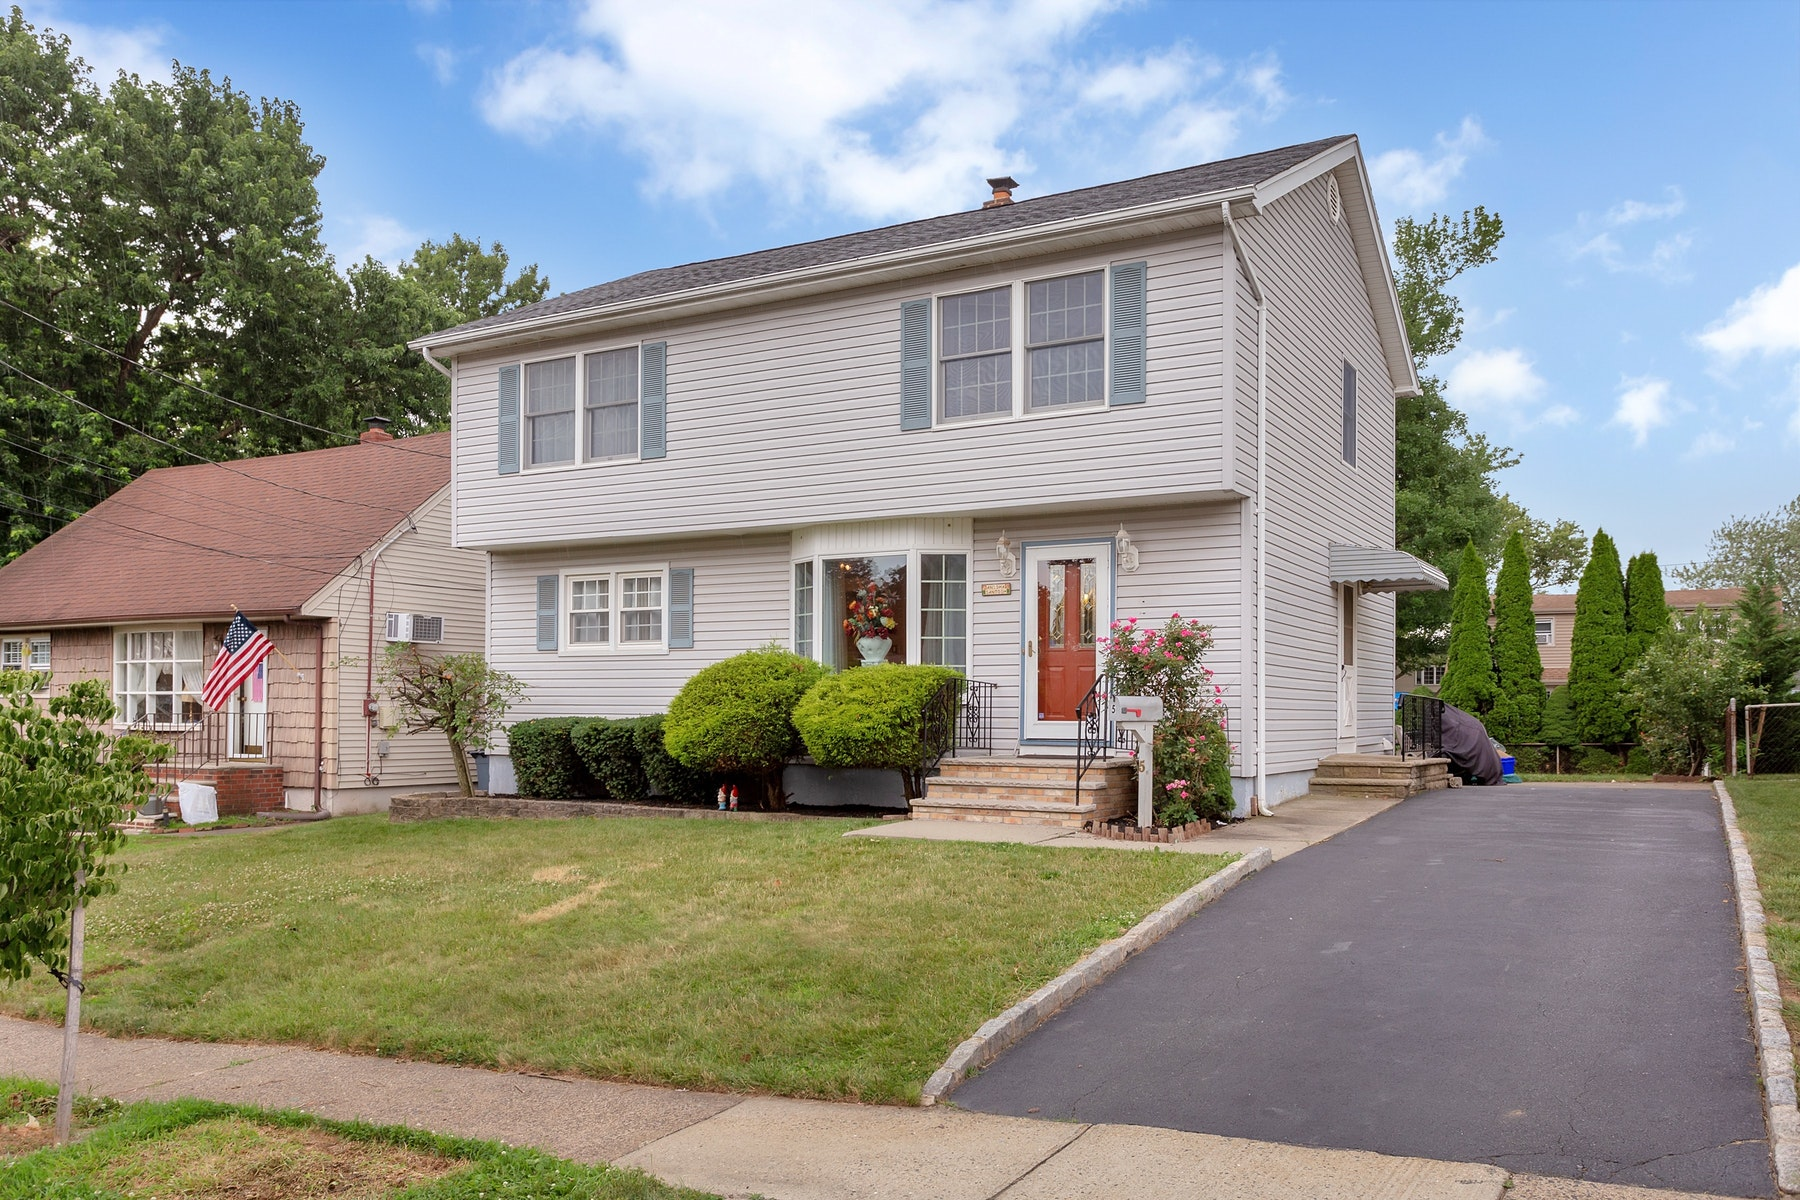 Single Family Homes for Rent at Bright 4 Bedroom Rental 5 Craig Pl., Nutley, New Jersey 07110 United States